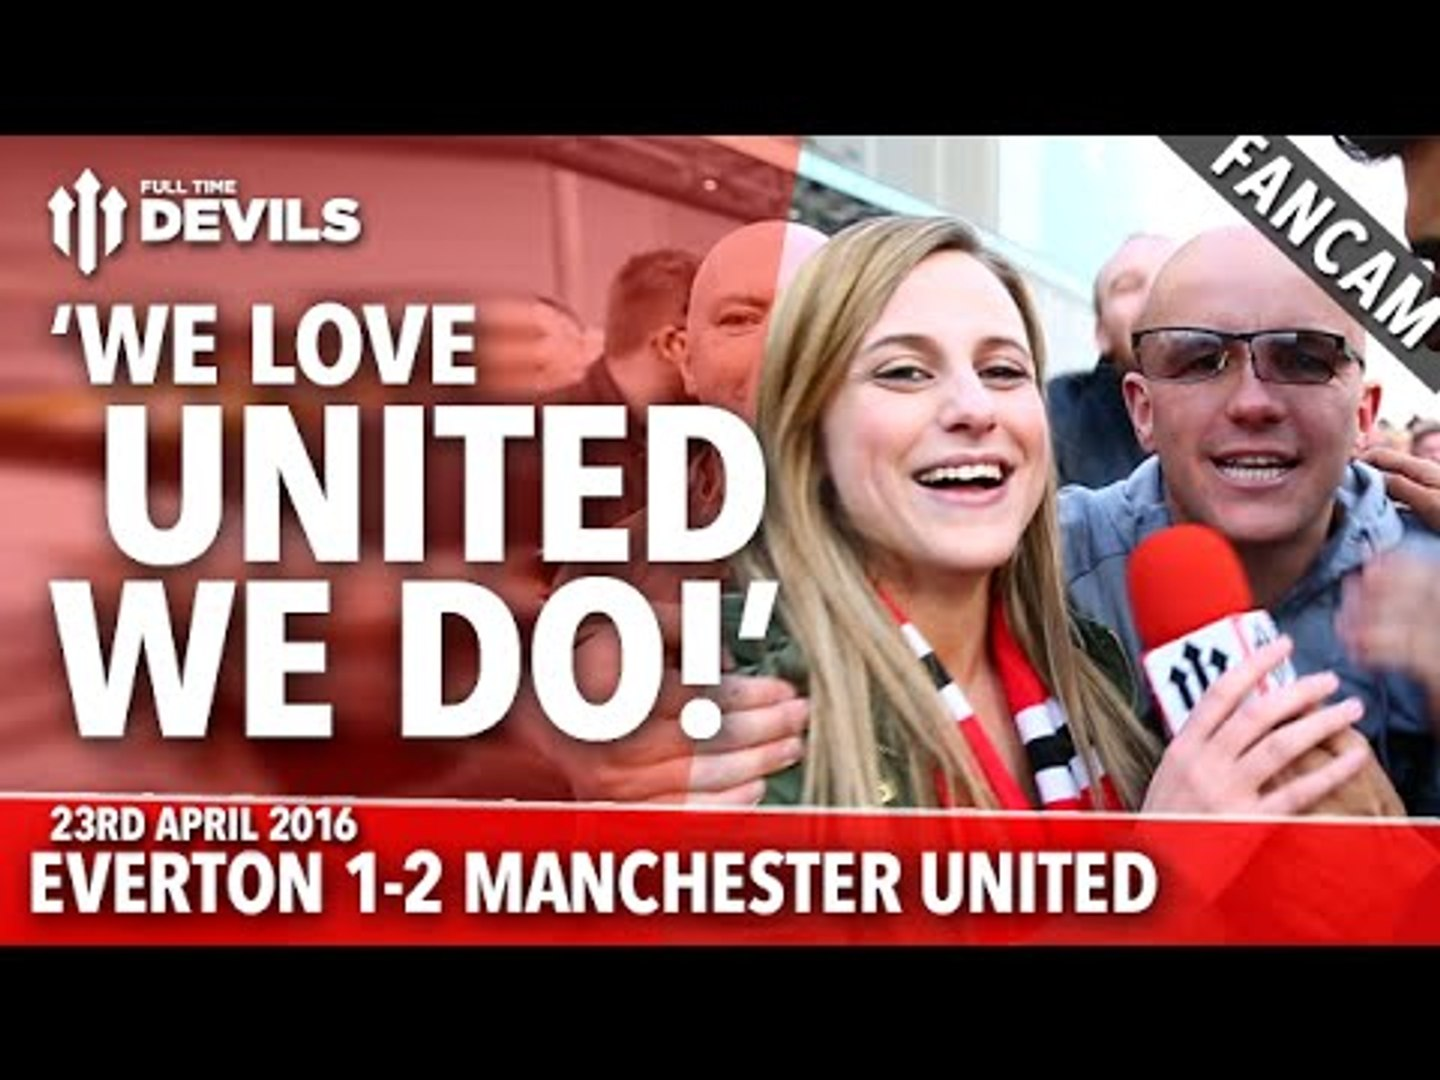 WE LOVE UNITED WE DO! | Everton 1-2 Manchester United | FANCAM